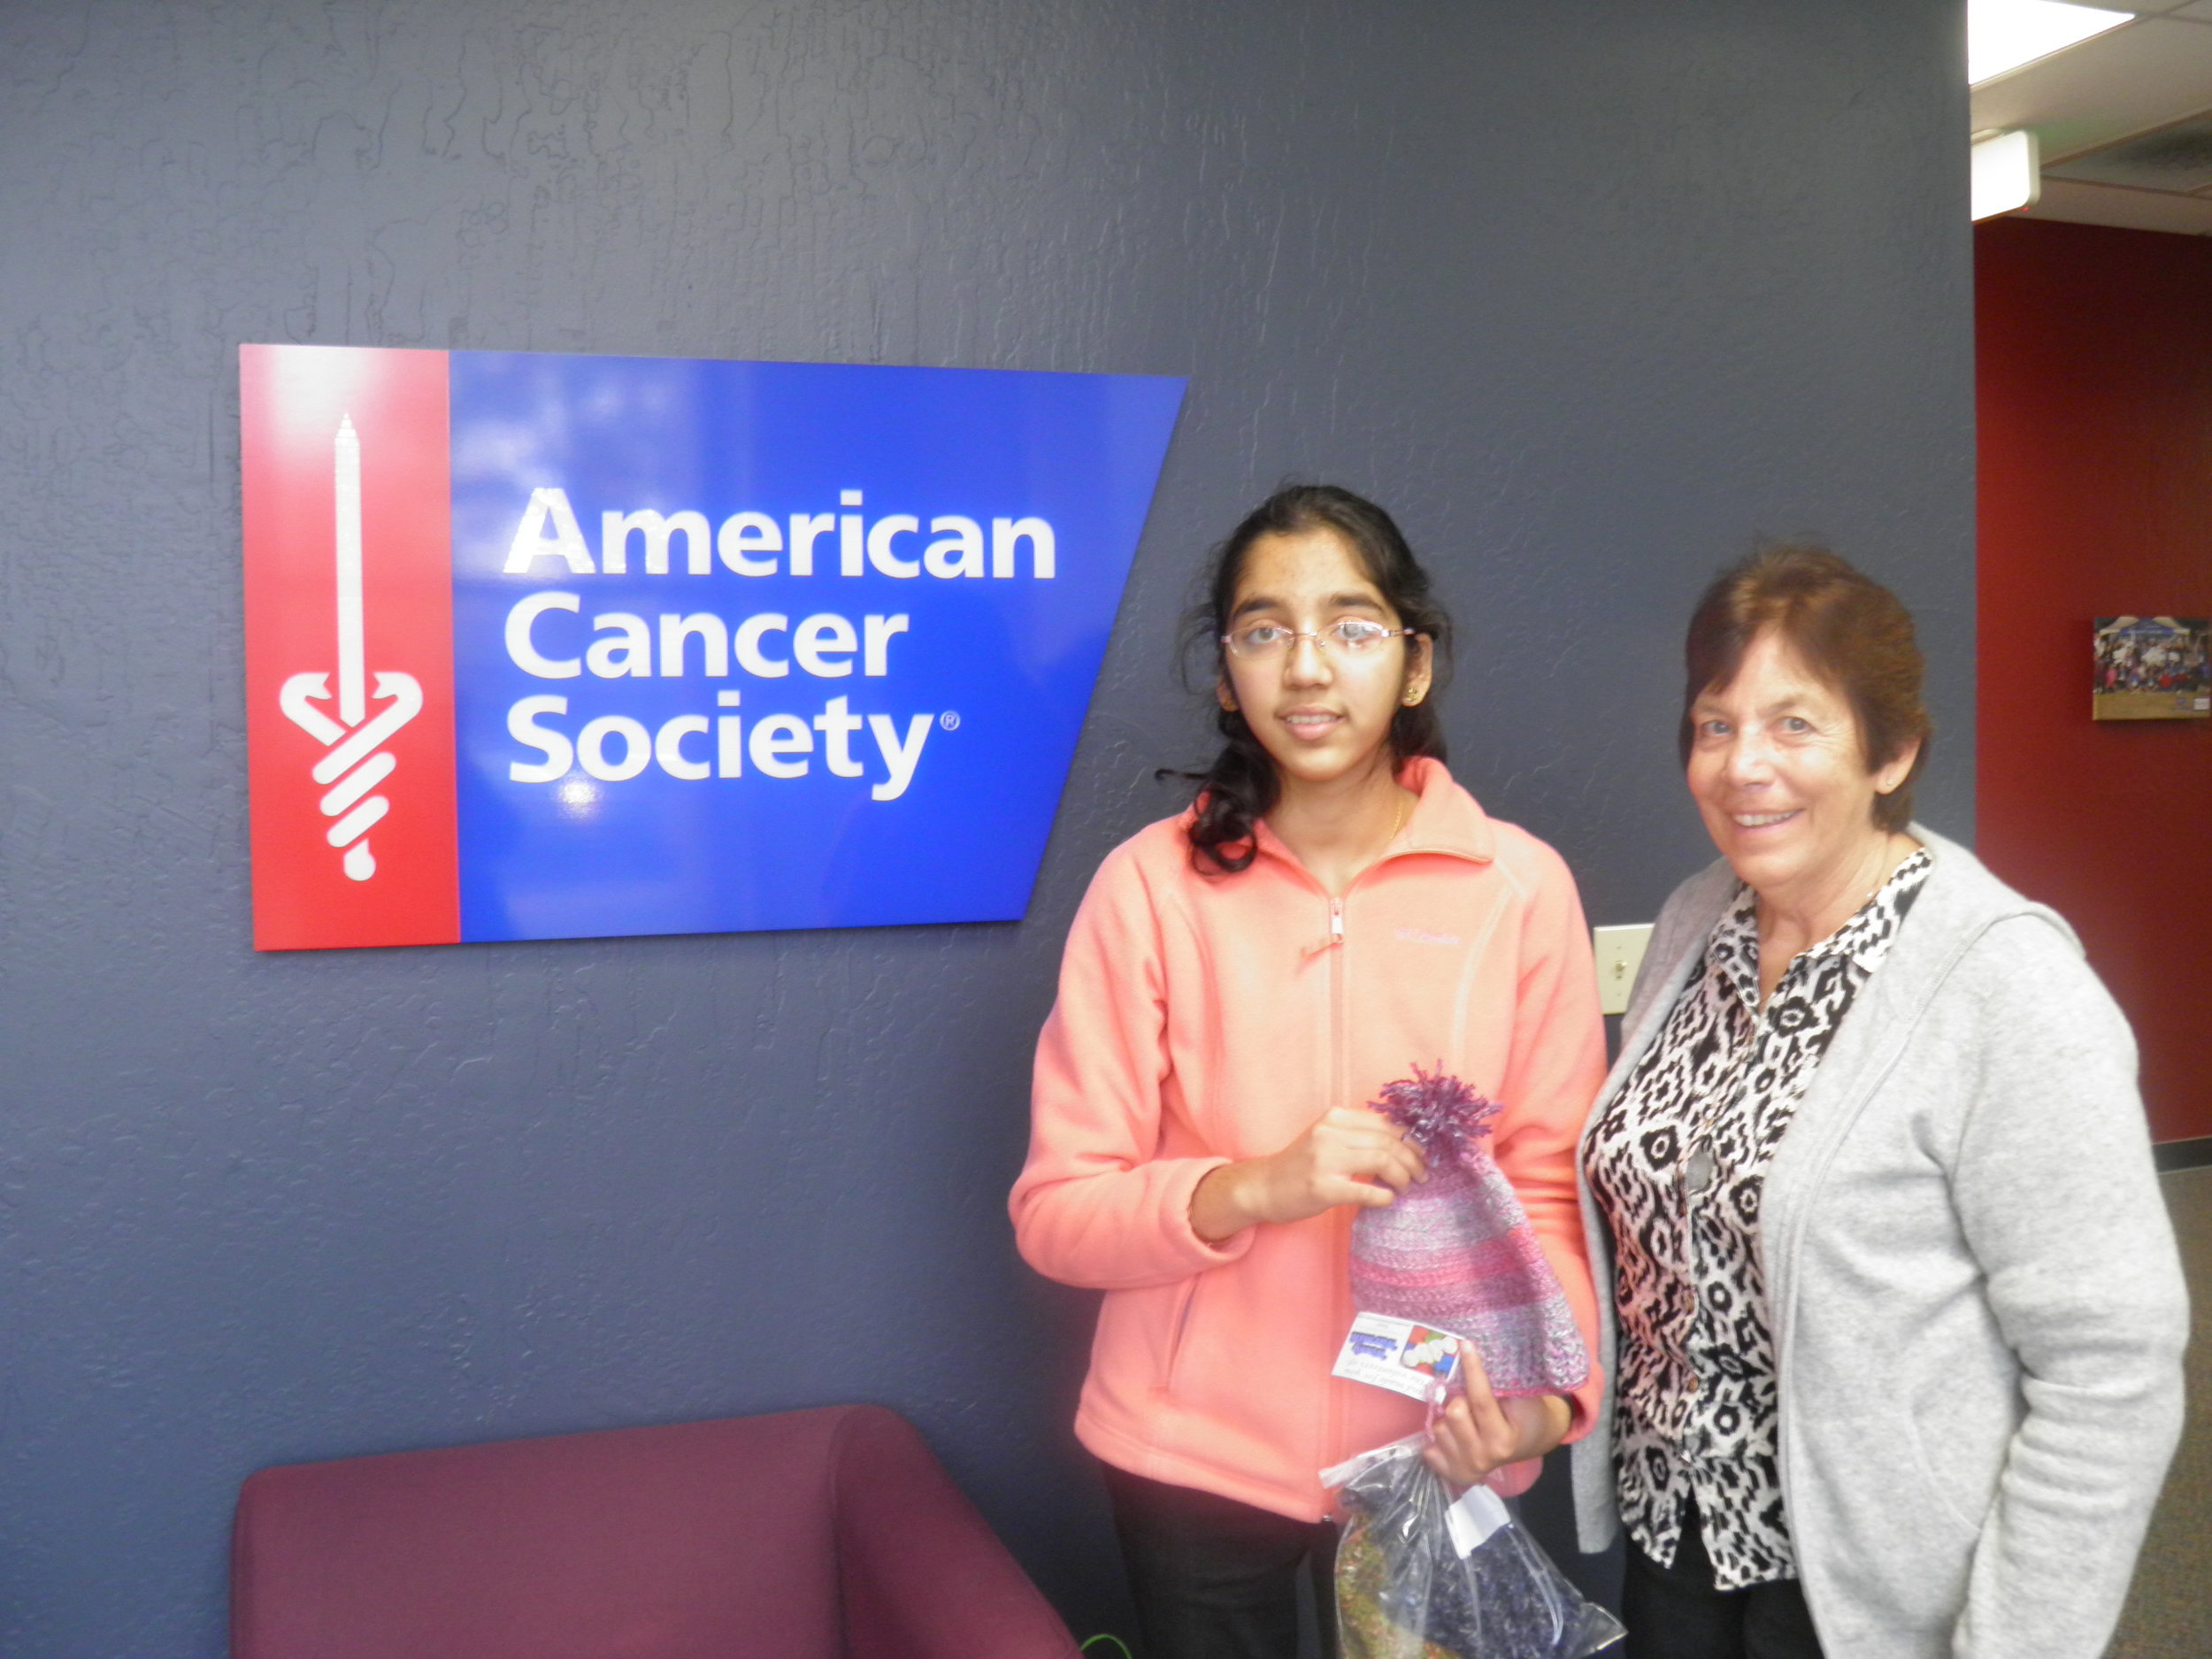 With Ms. Kathy Milano, American Cancer Society